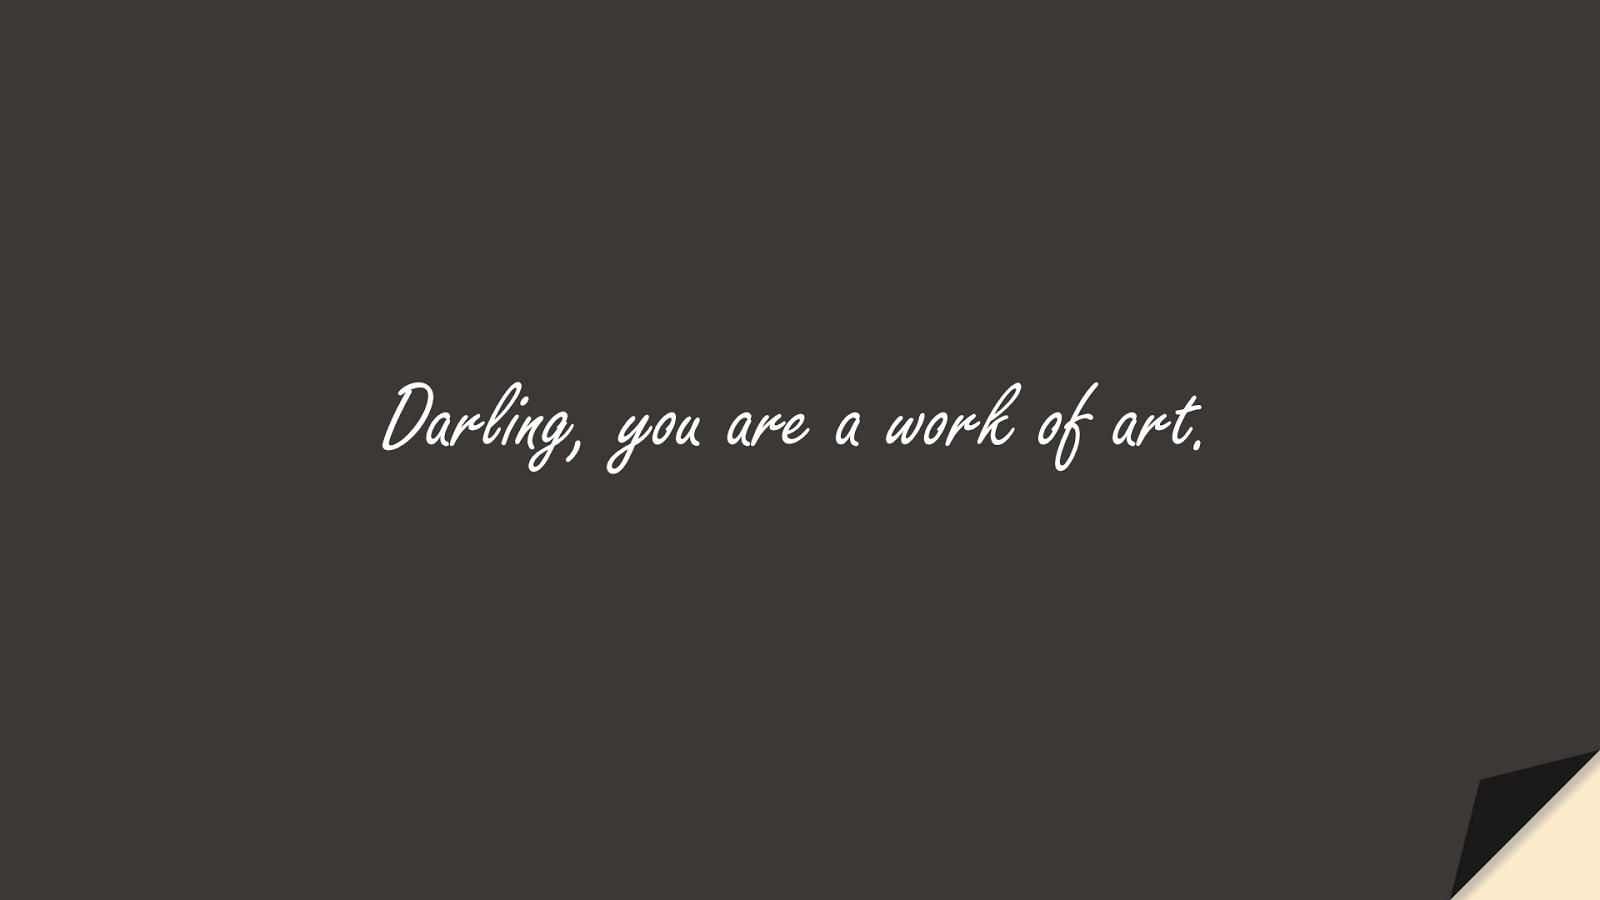 Darling, you are a work of art.FALSE